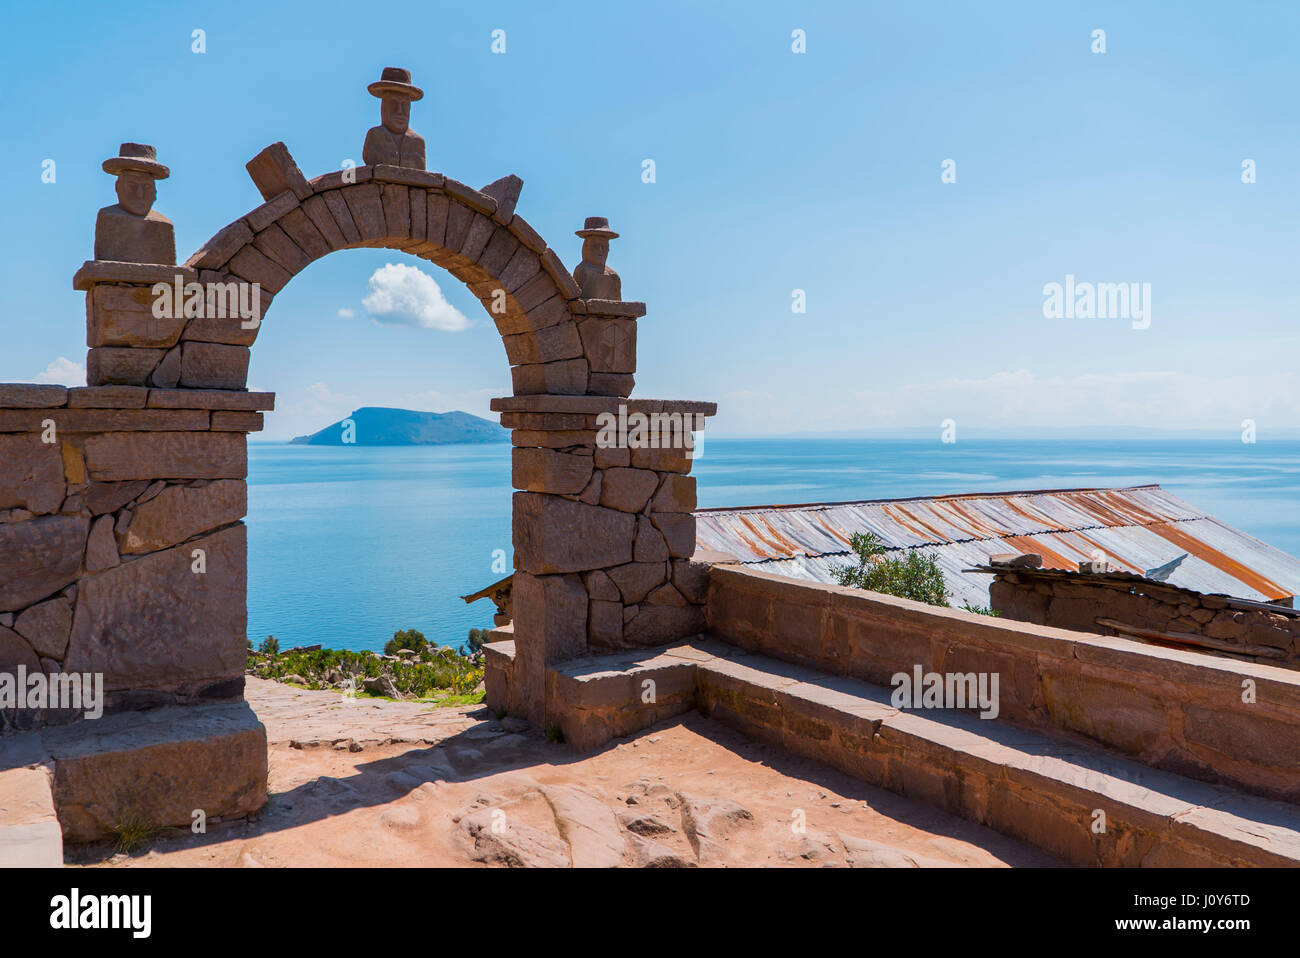 Lake titicaca - Stock Image